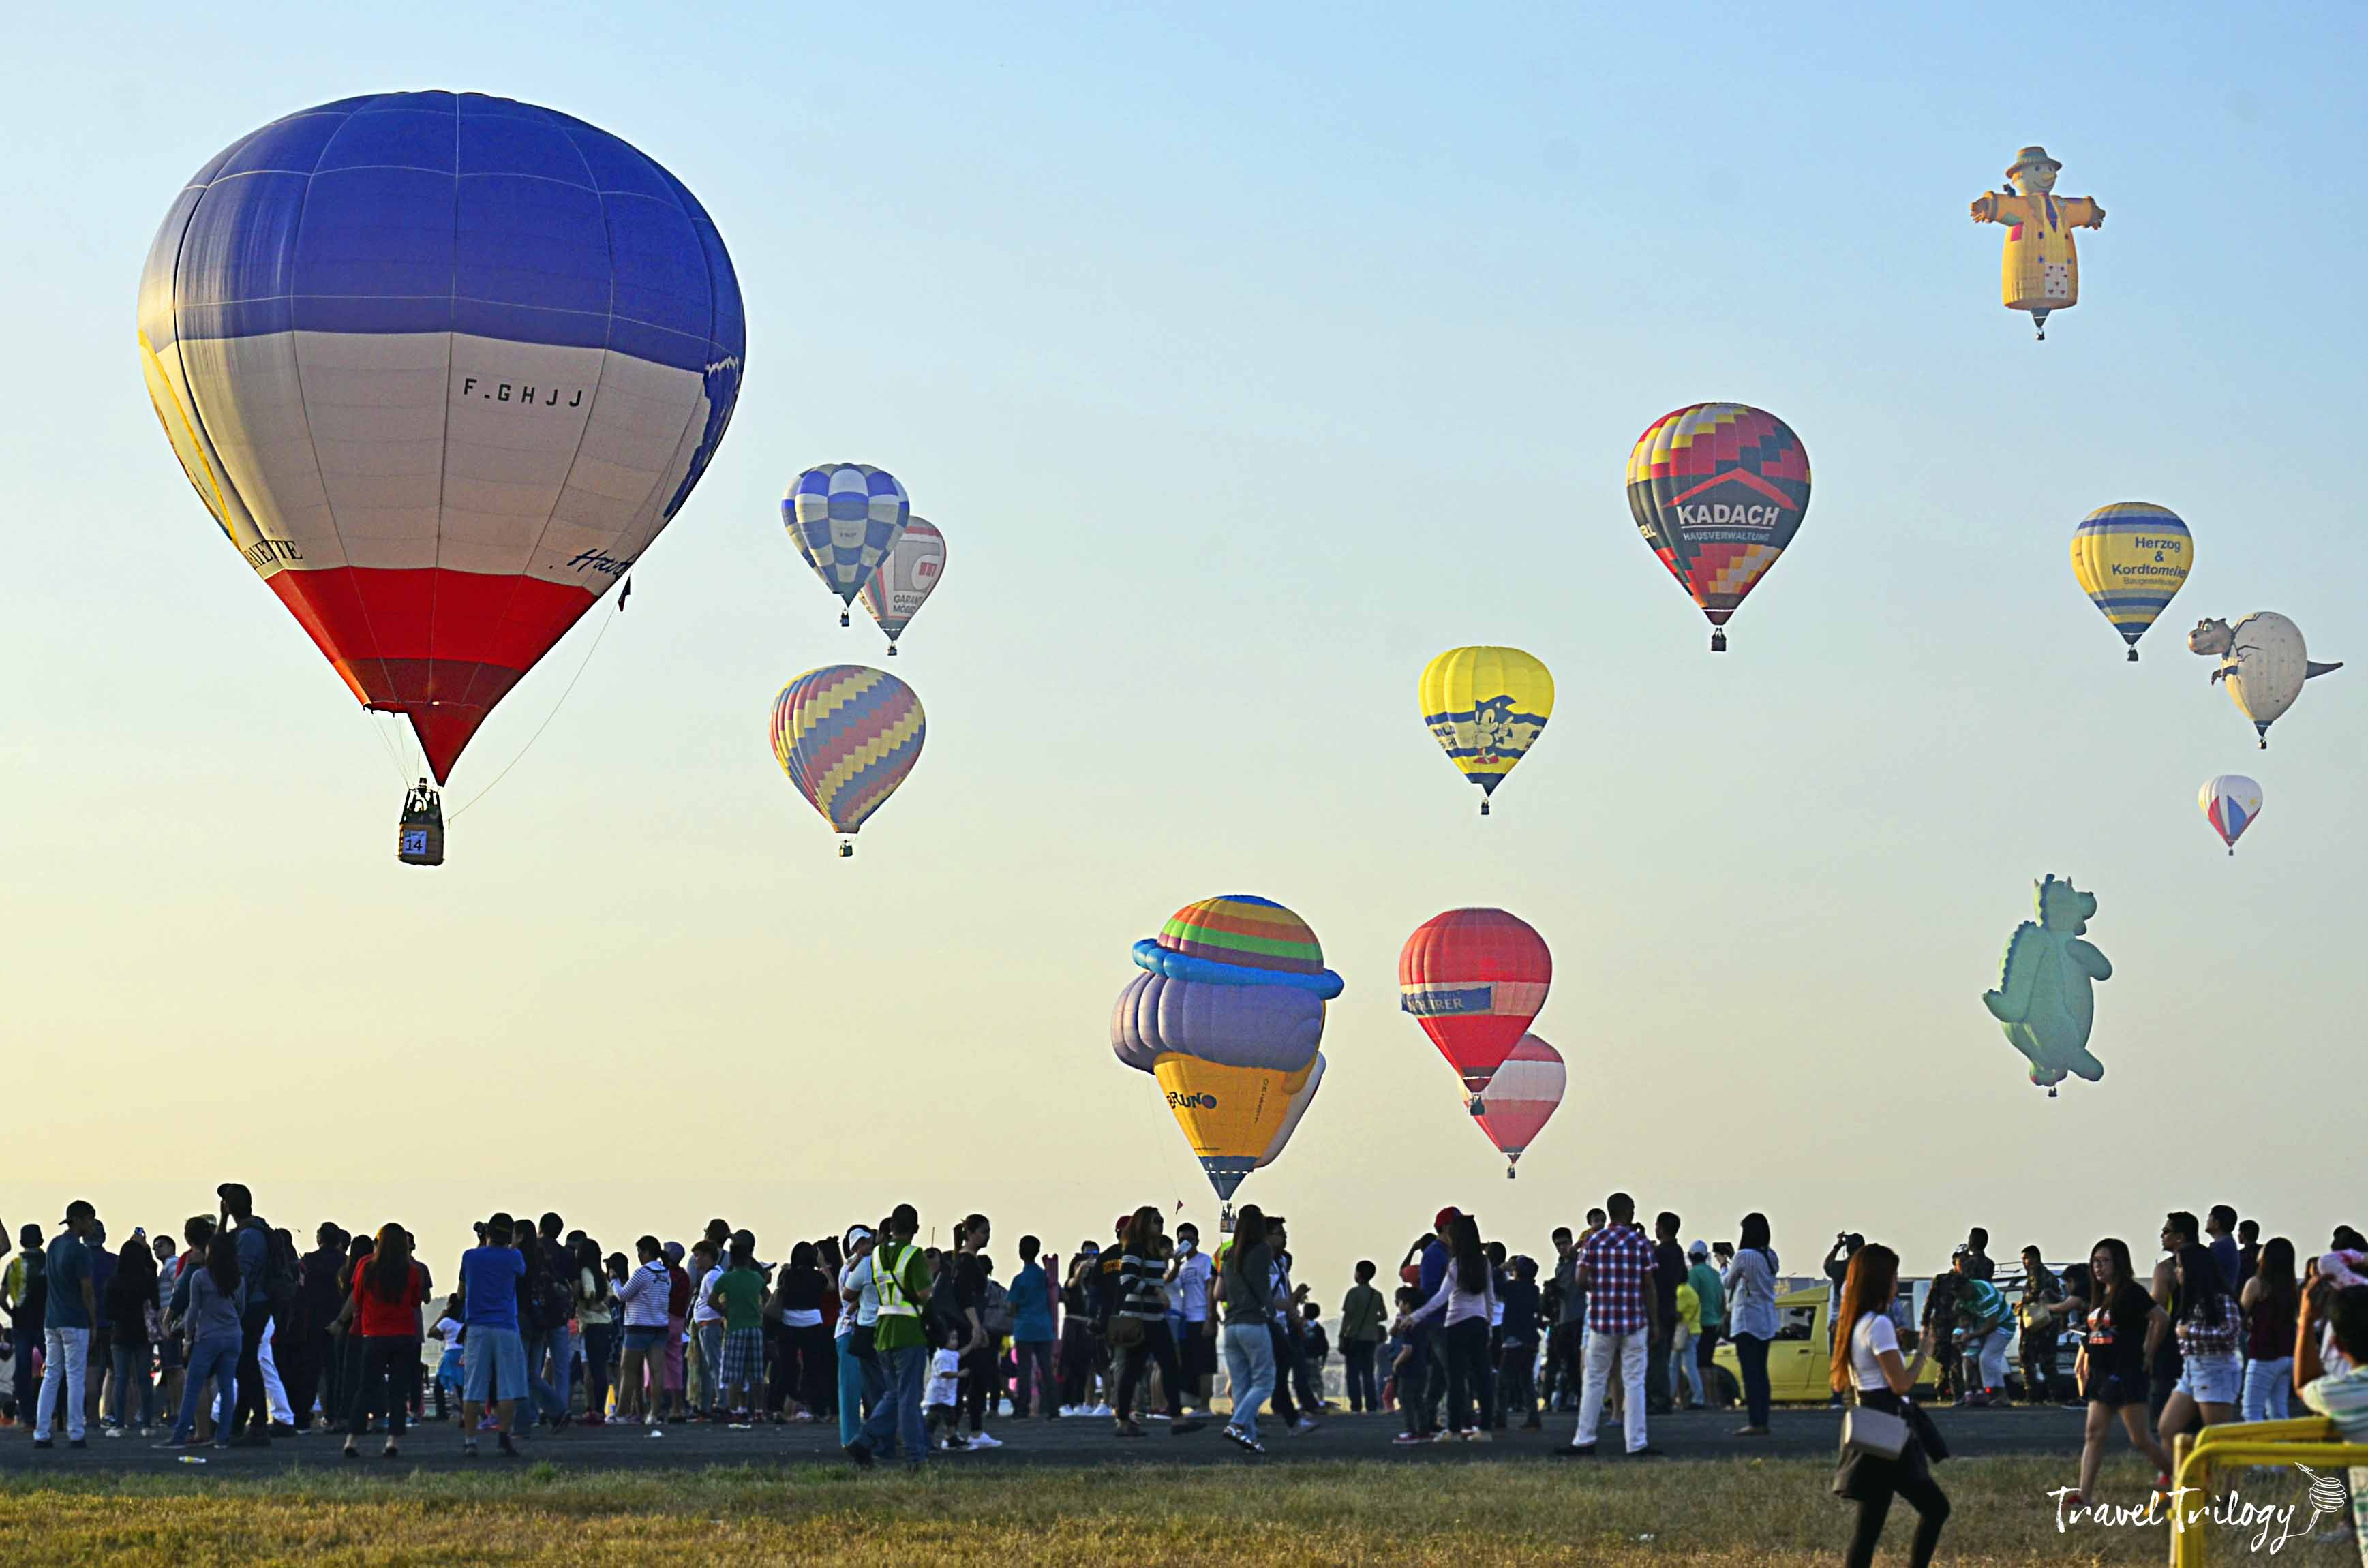 philippine hot air balloon fiesta